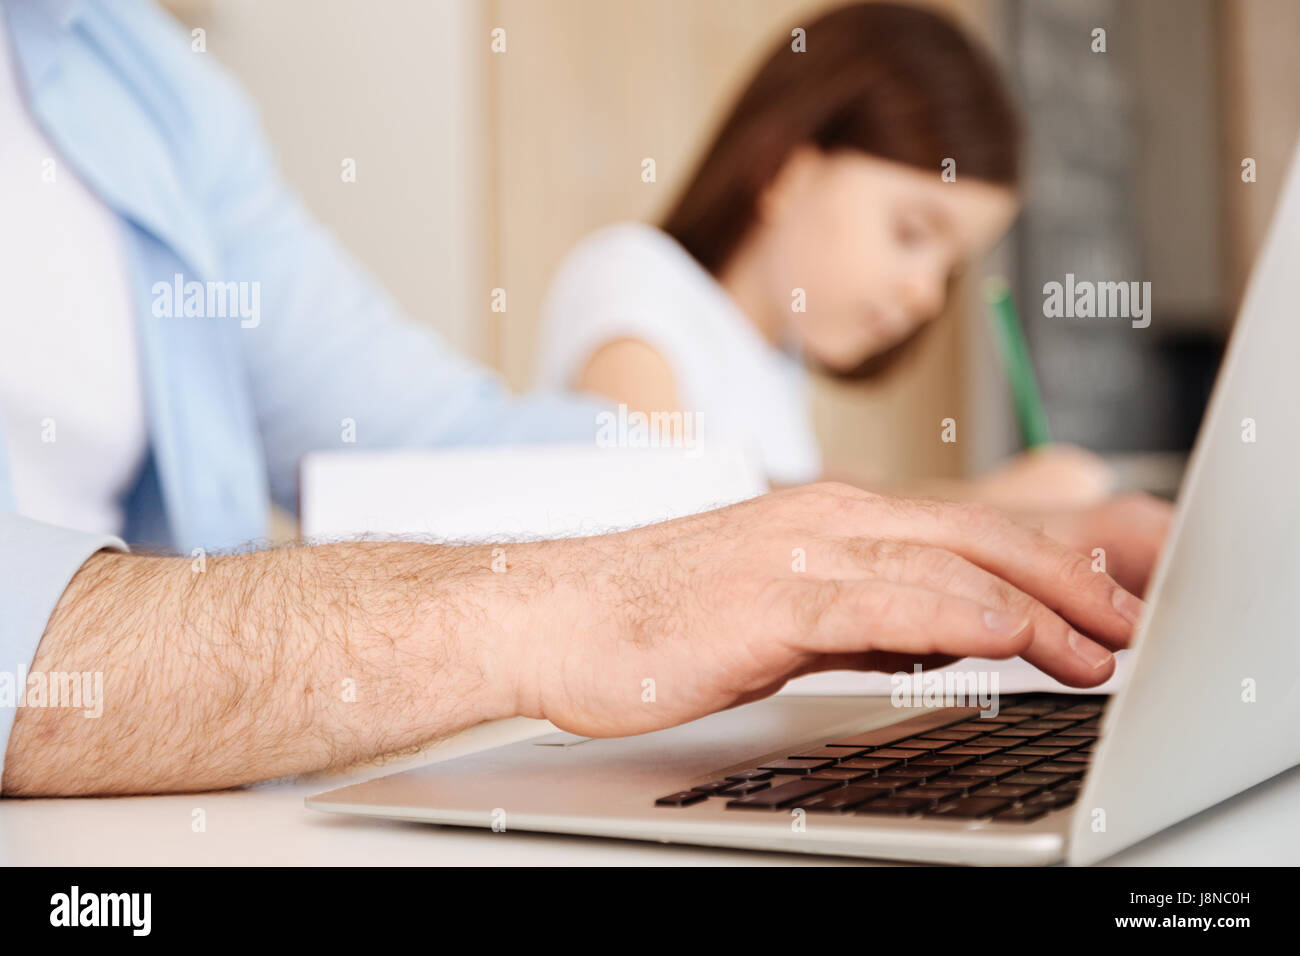 Hairy, well-groomed male hands typing on the laptop keyboard